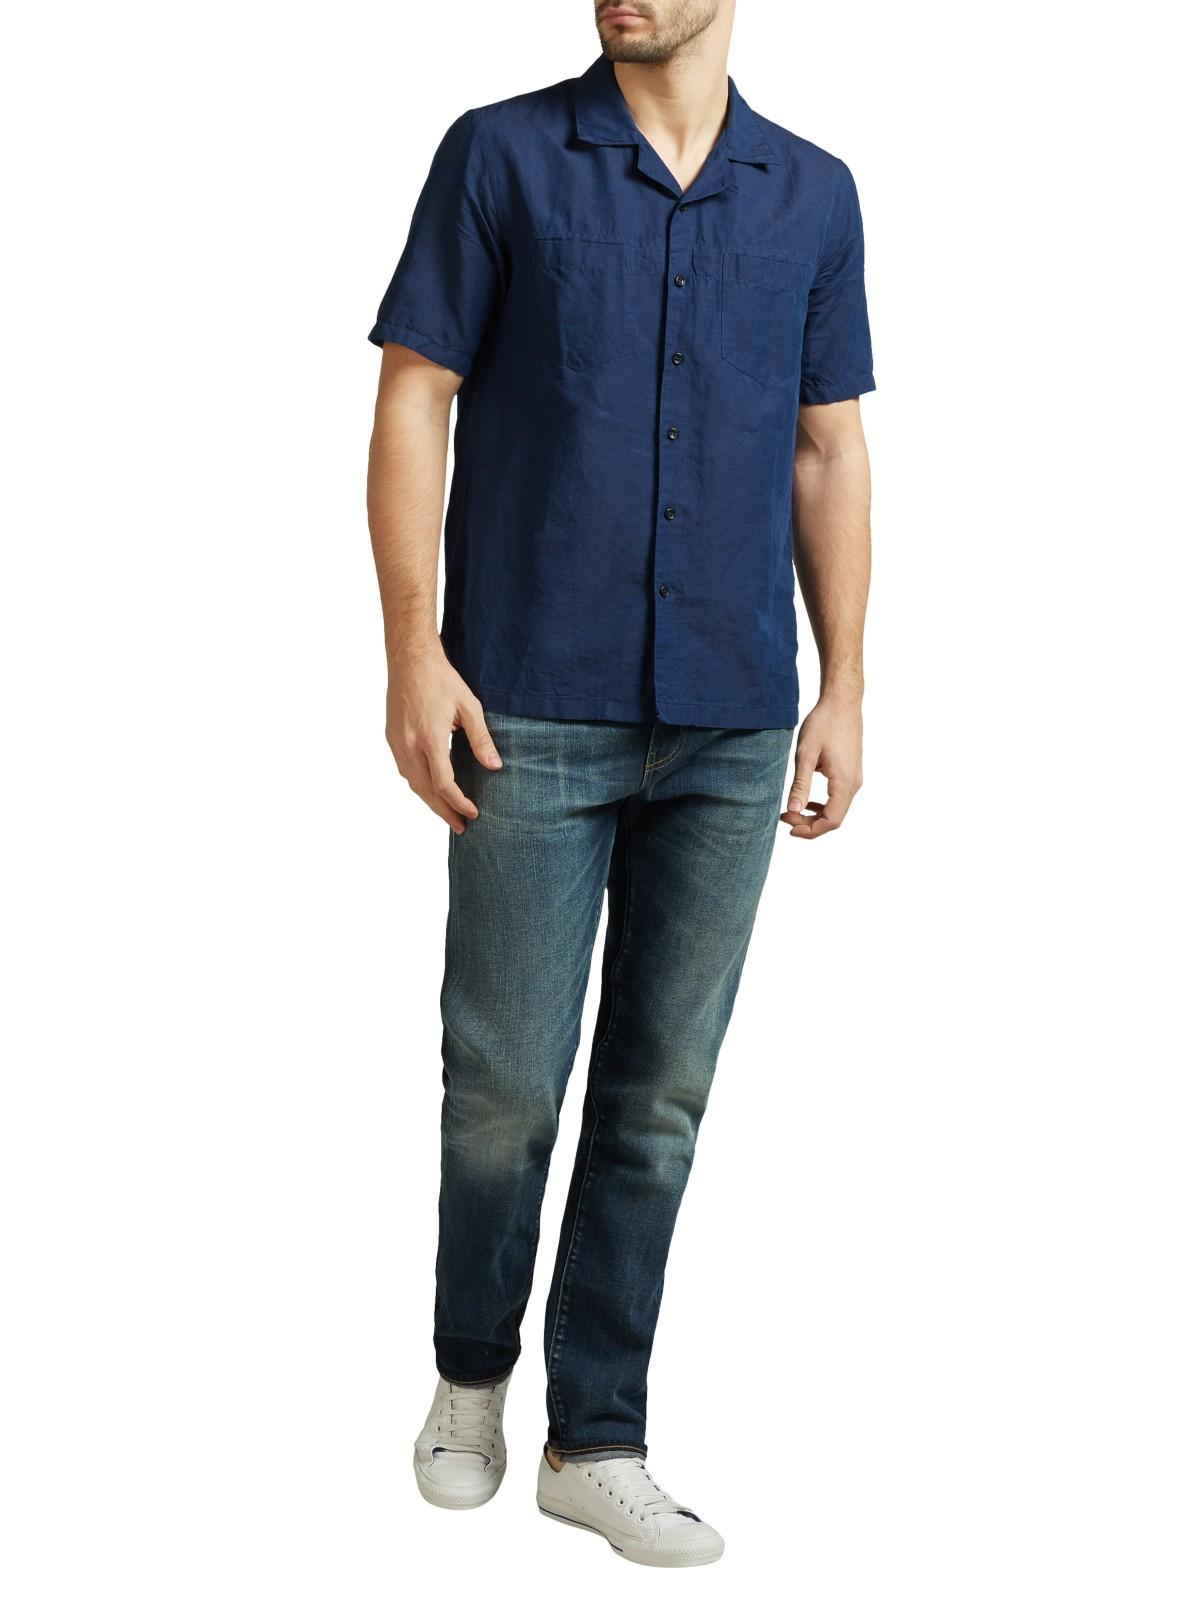 Levi's Denim Made & Crafted Tack Slim Selvedge Jeans in Blue for Men